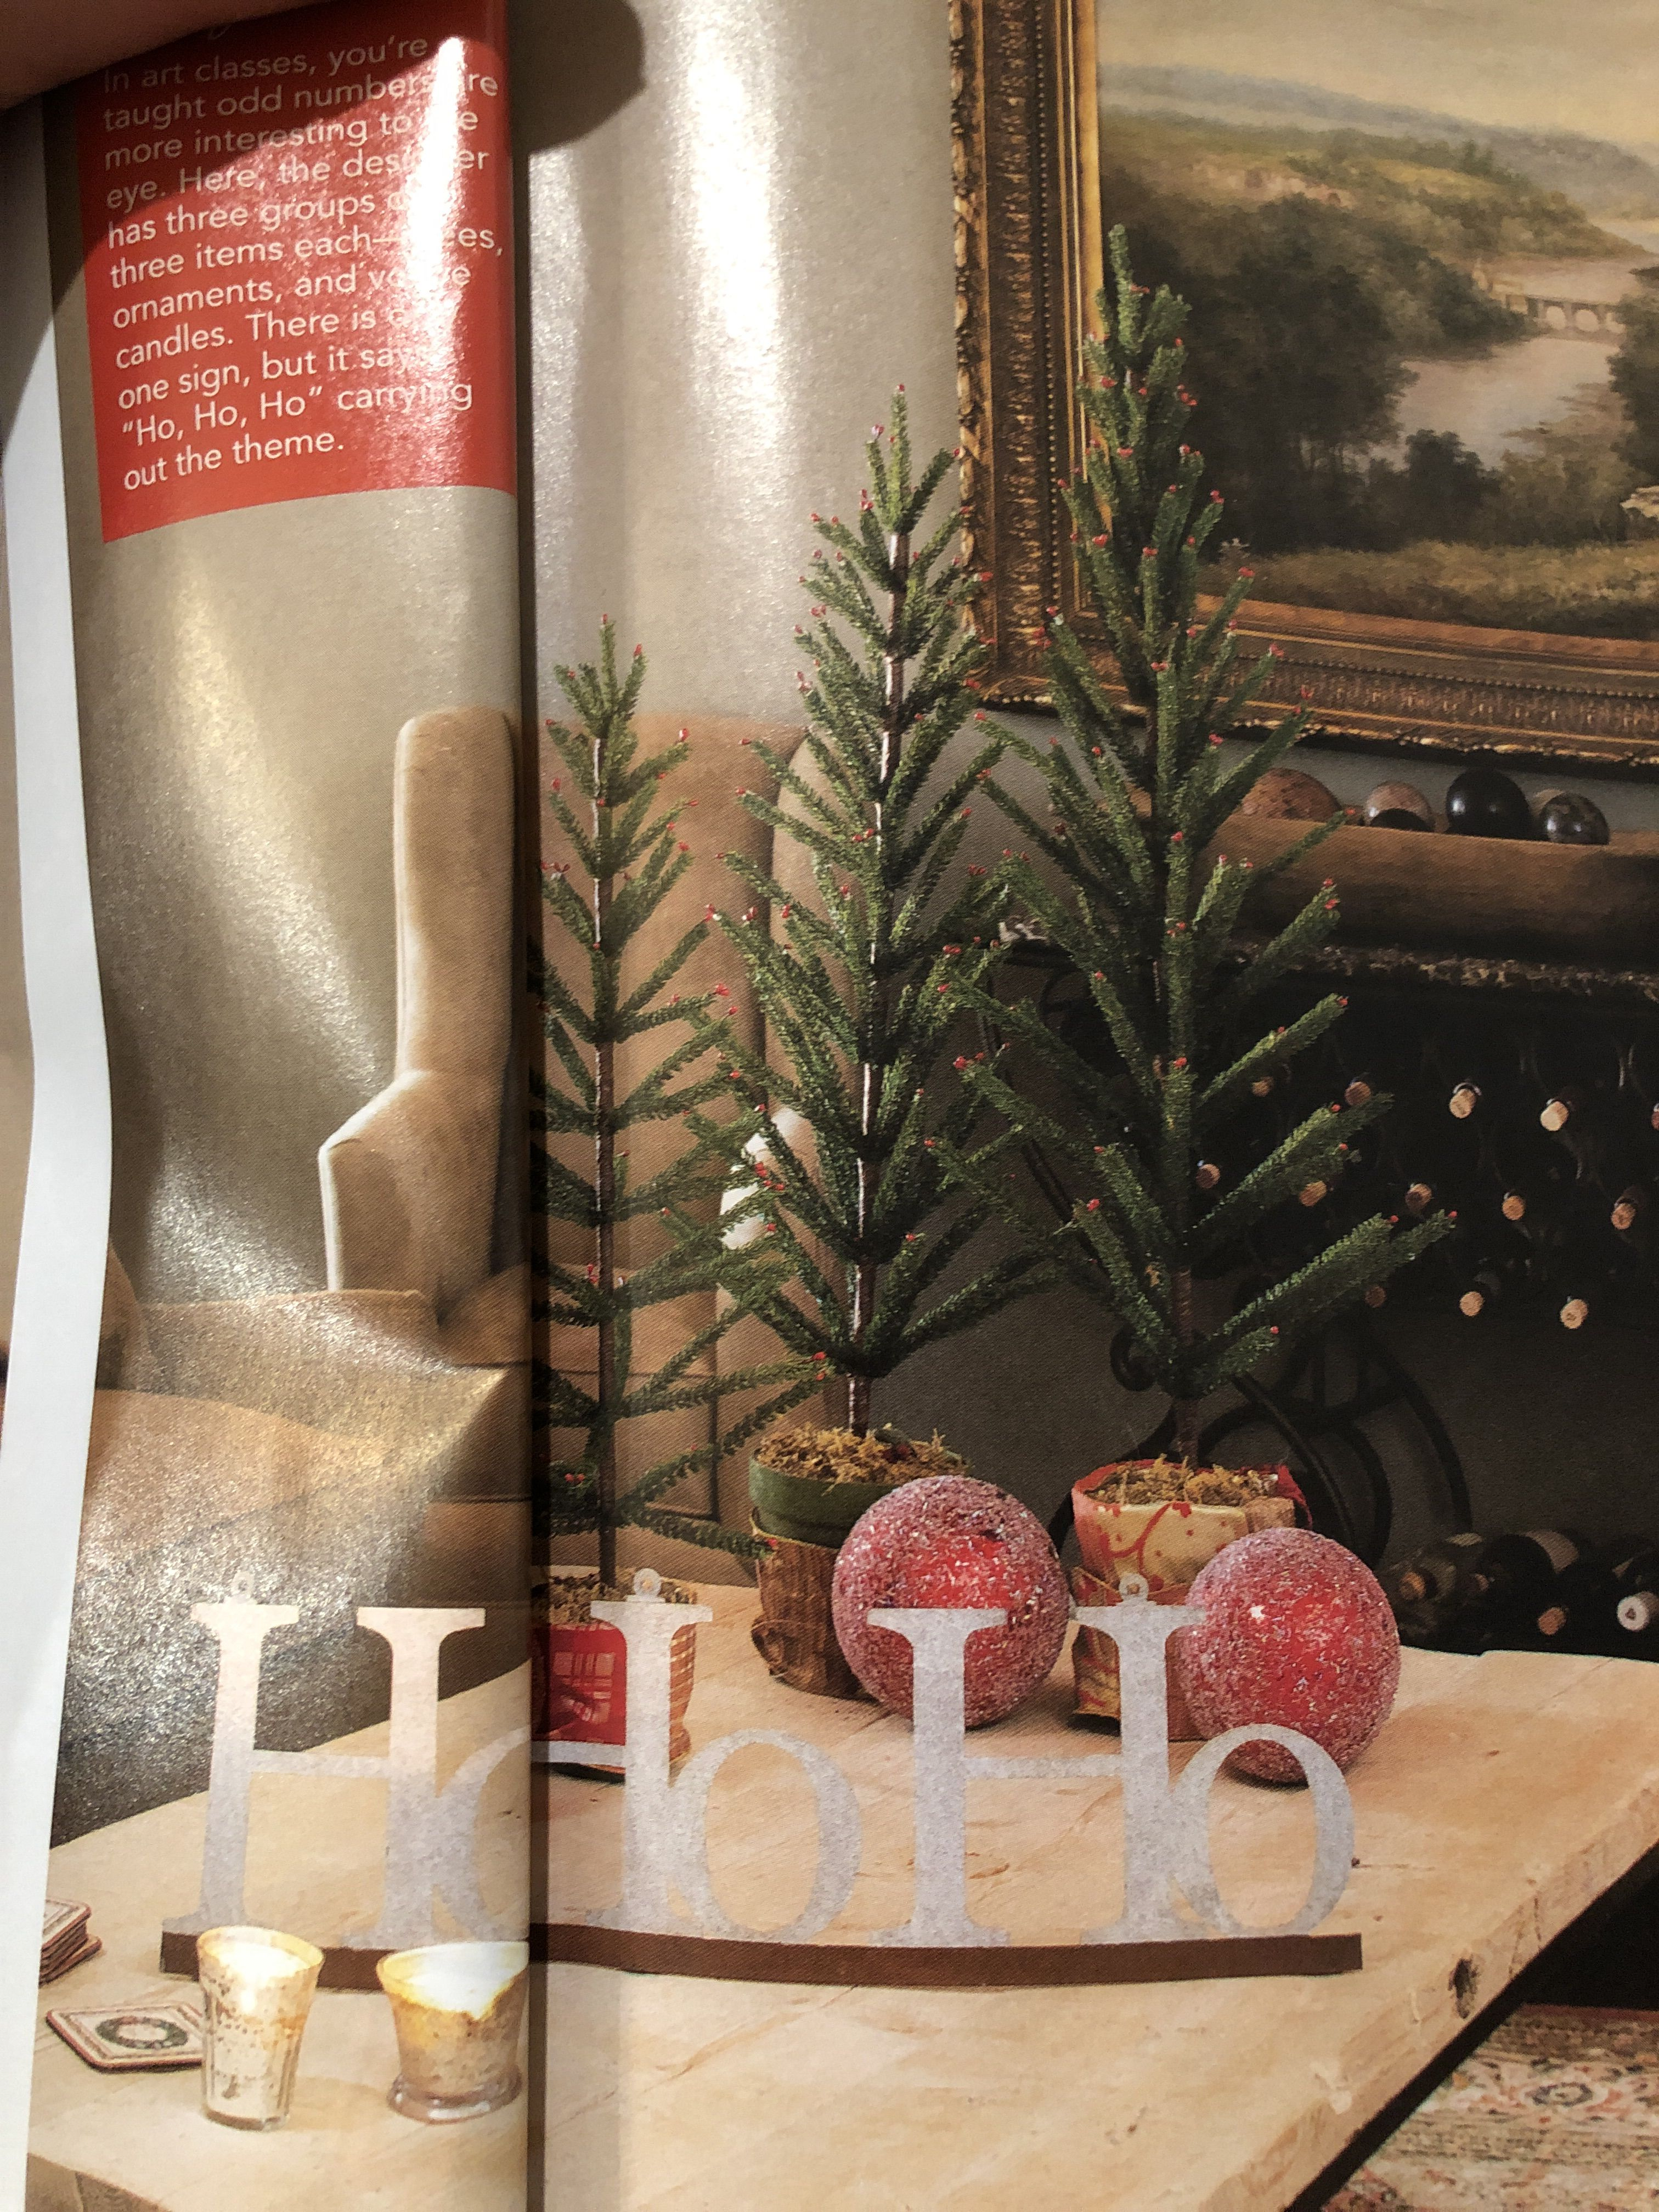 Pin by Kami Periman on Christmas decoration ideas 2018